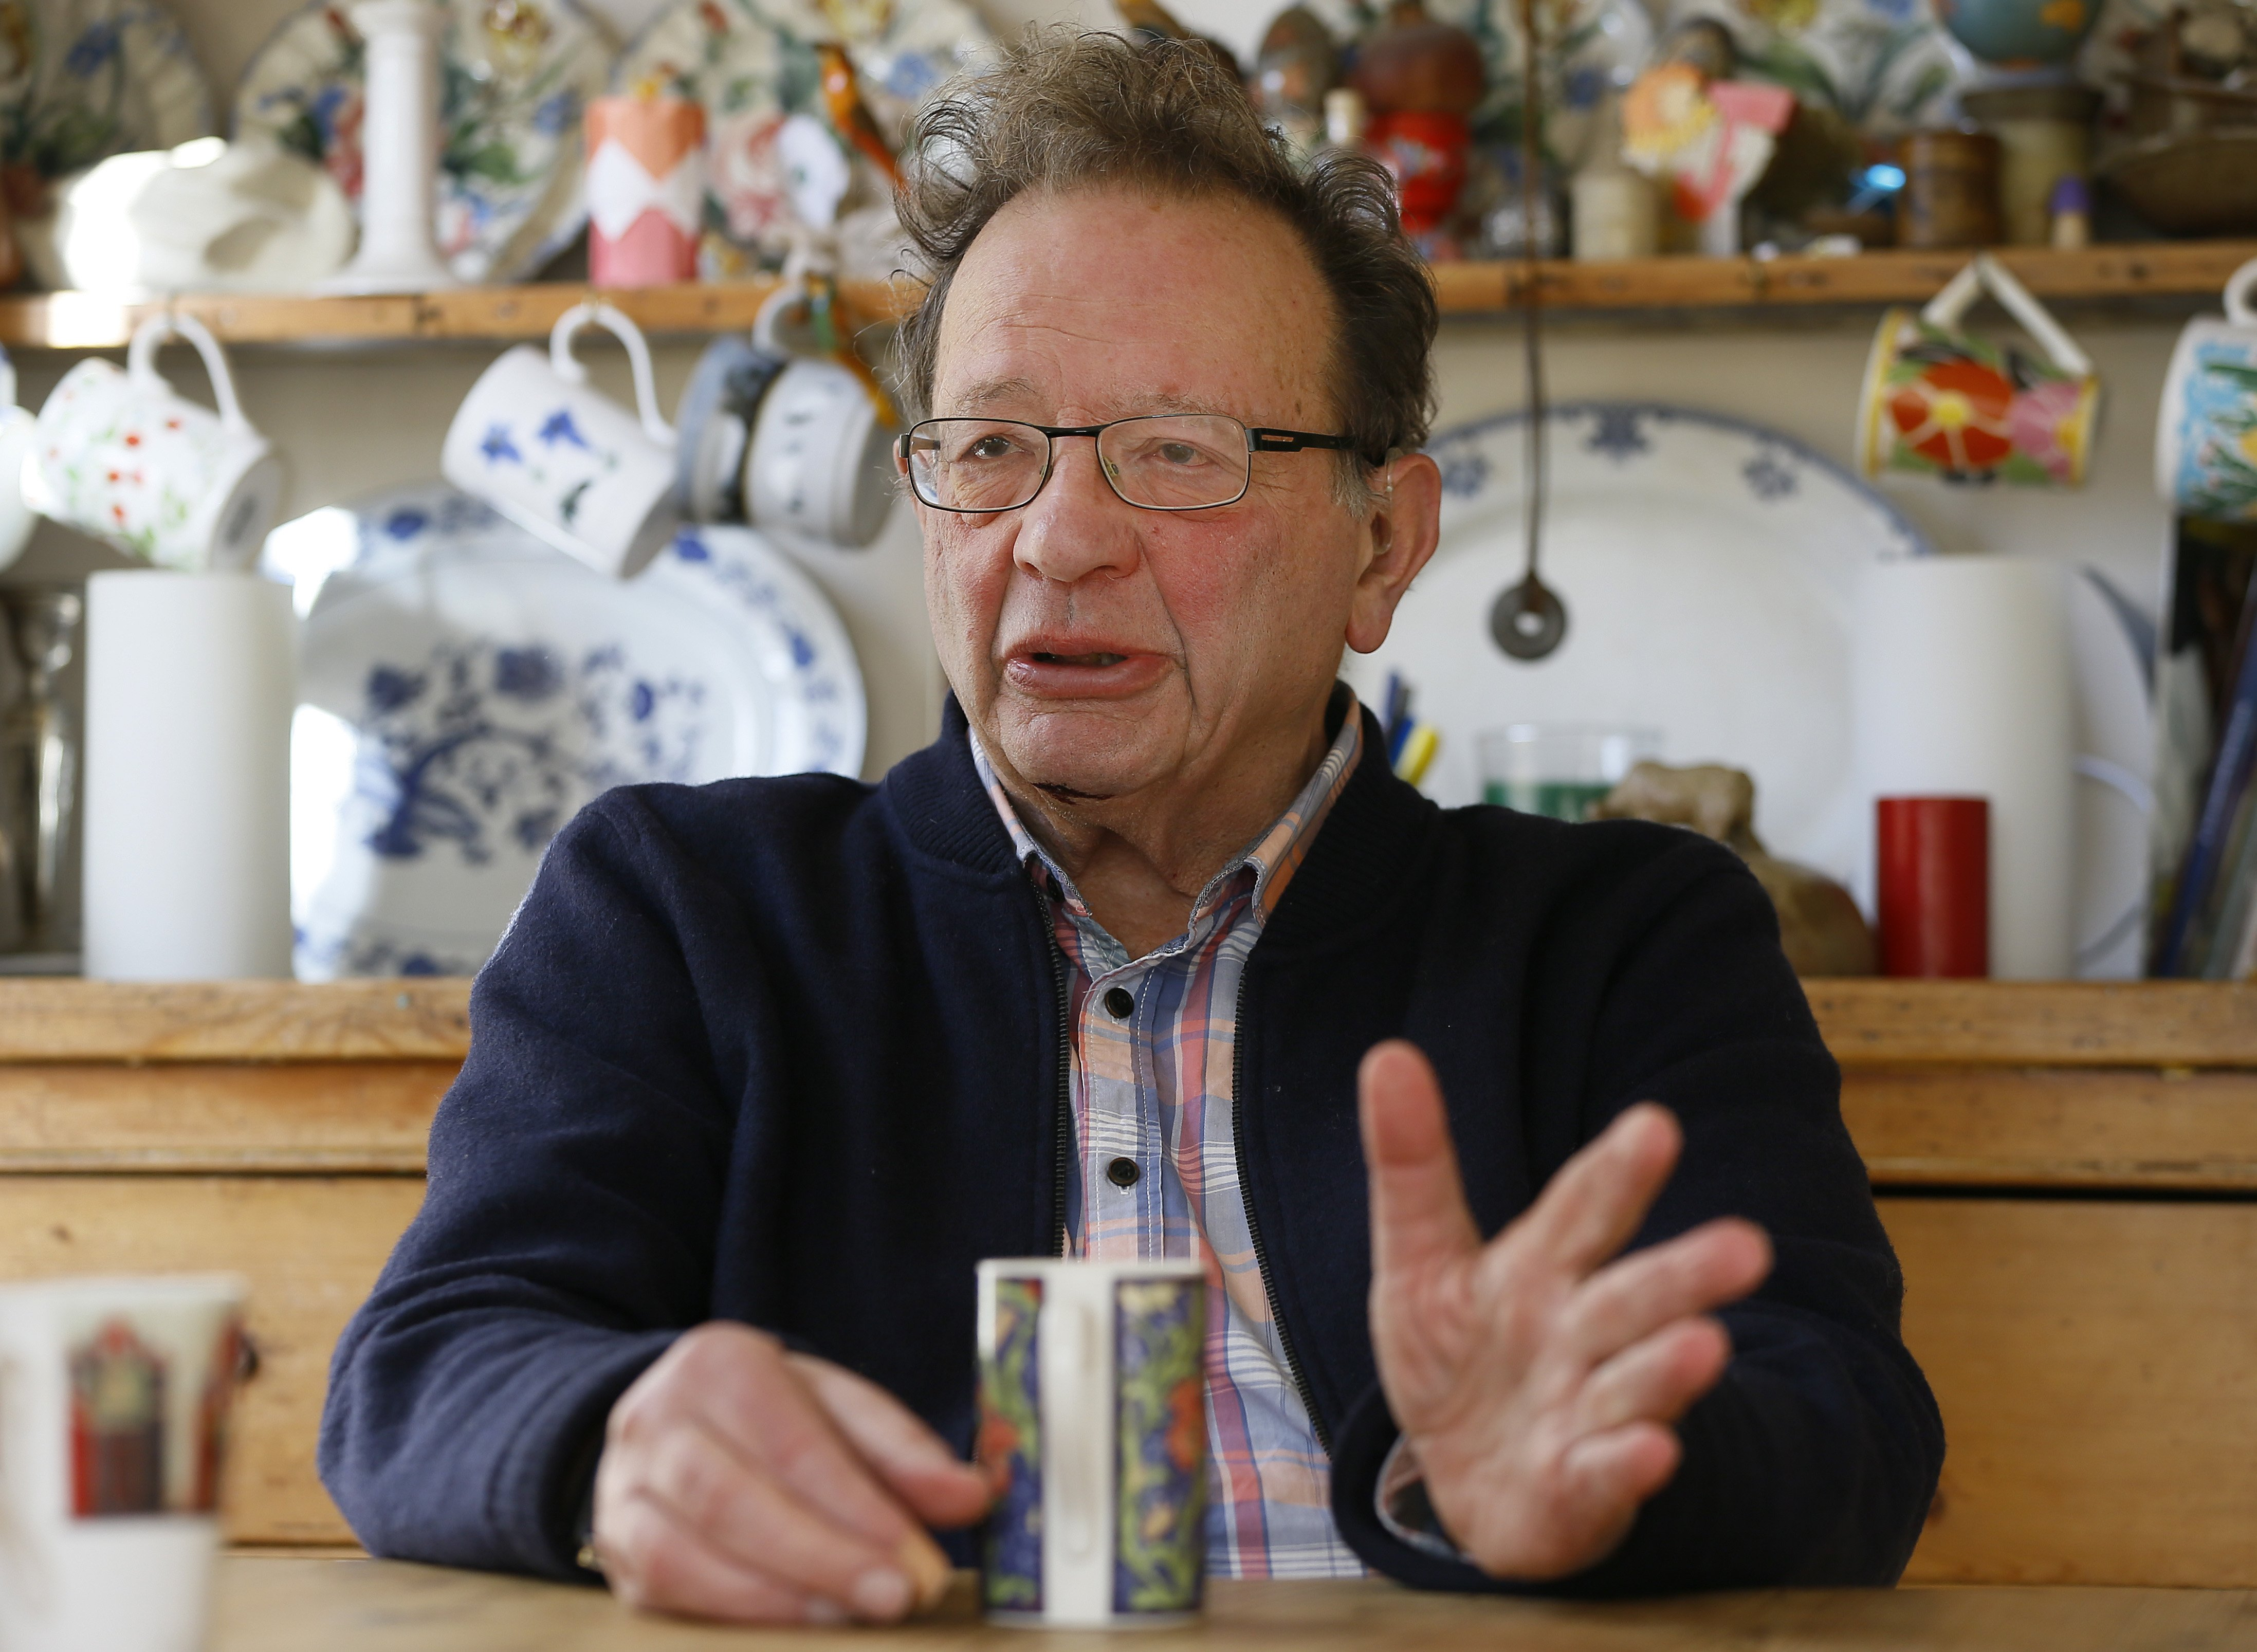 Larry Sanders at home in his kitchen in Oxford, England, on Feb. 15, 2016.